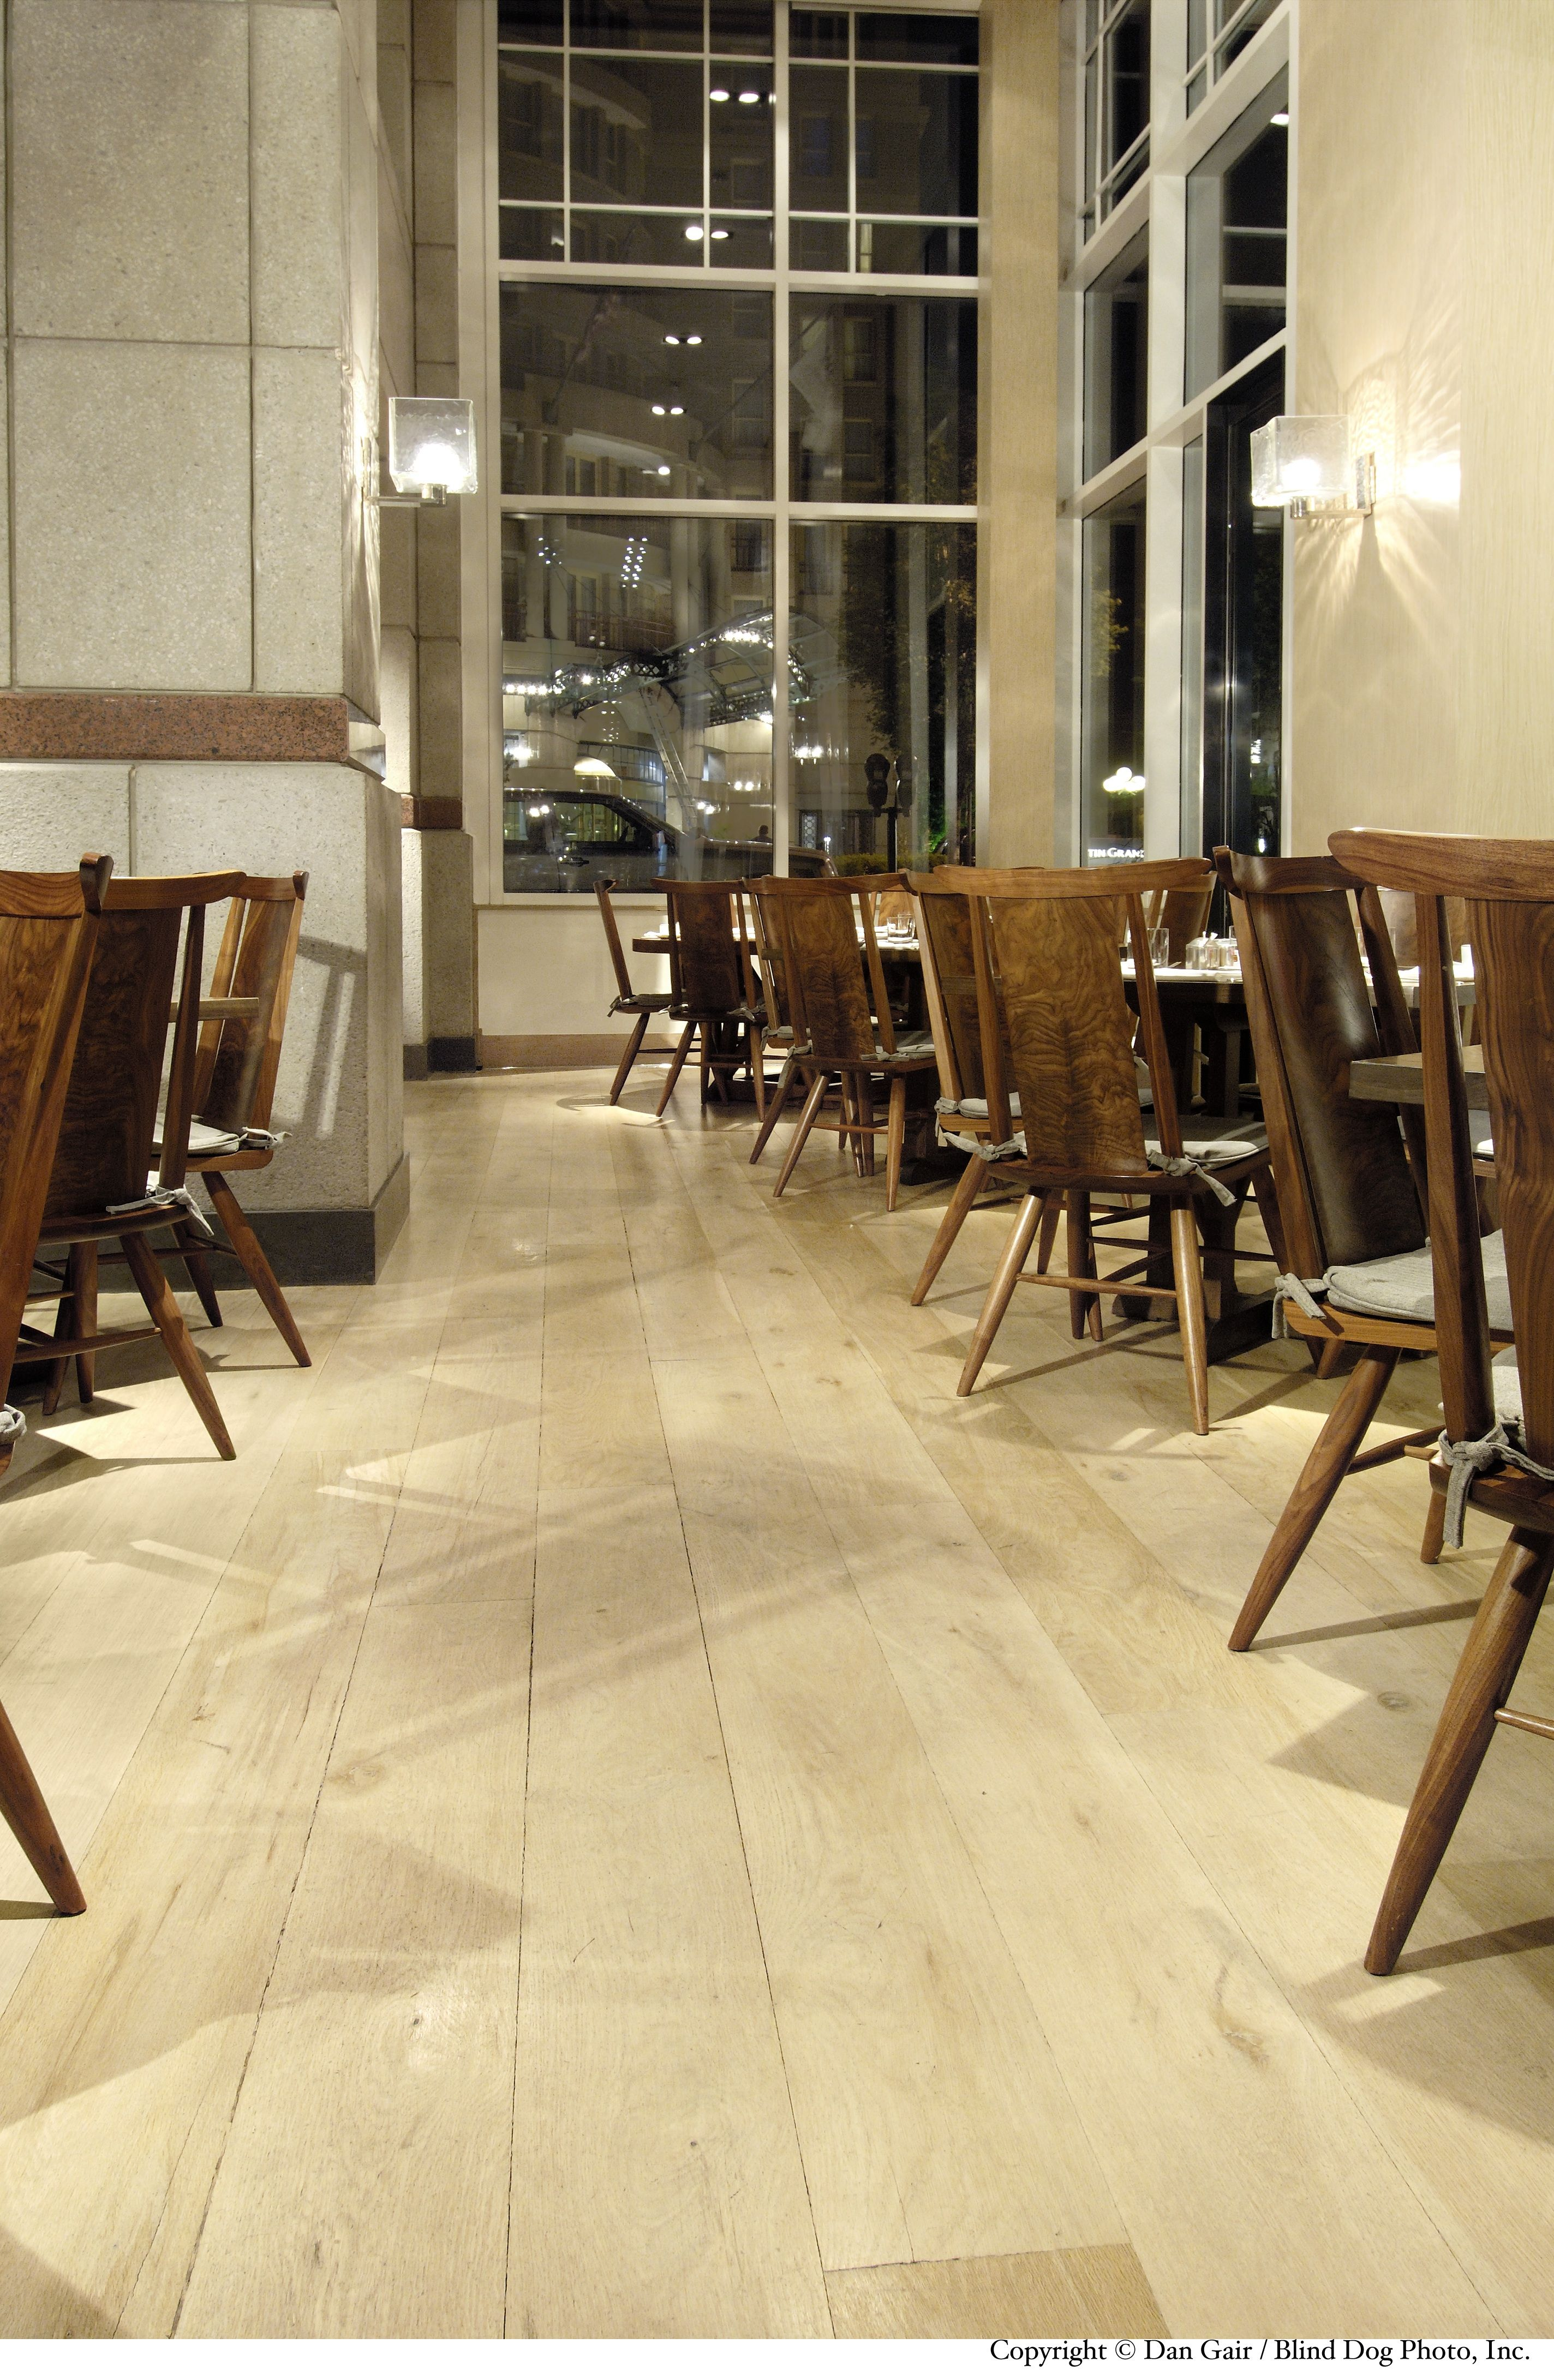 Factor Into Your Restaurant With Carlisle Wide Plank Floorings White